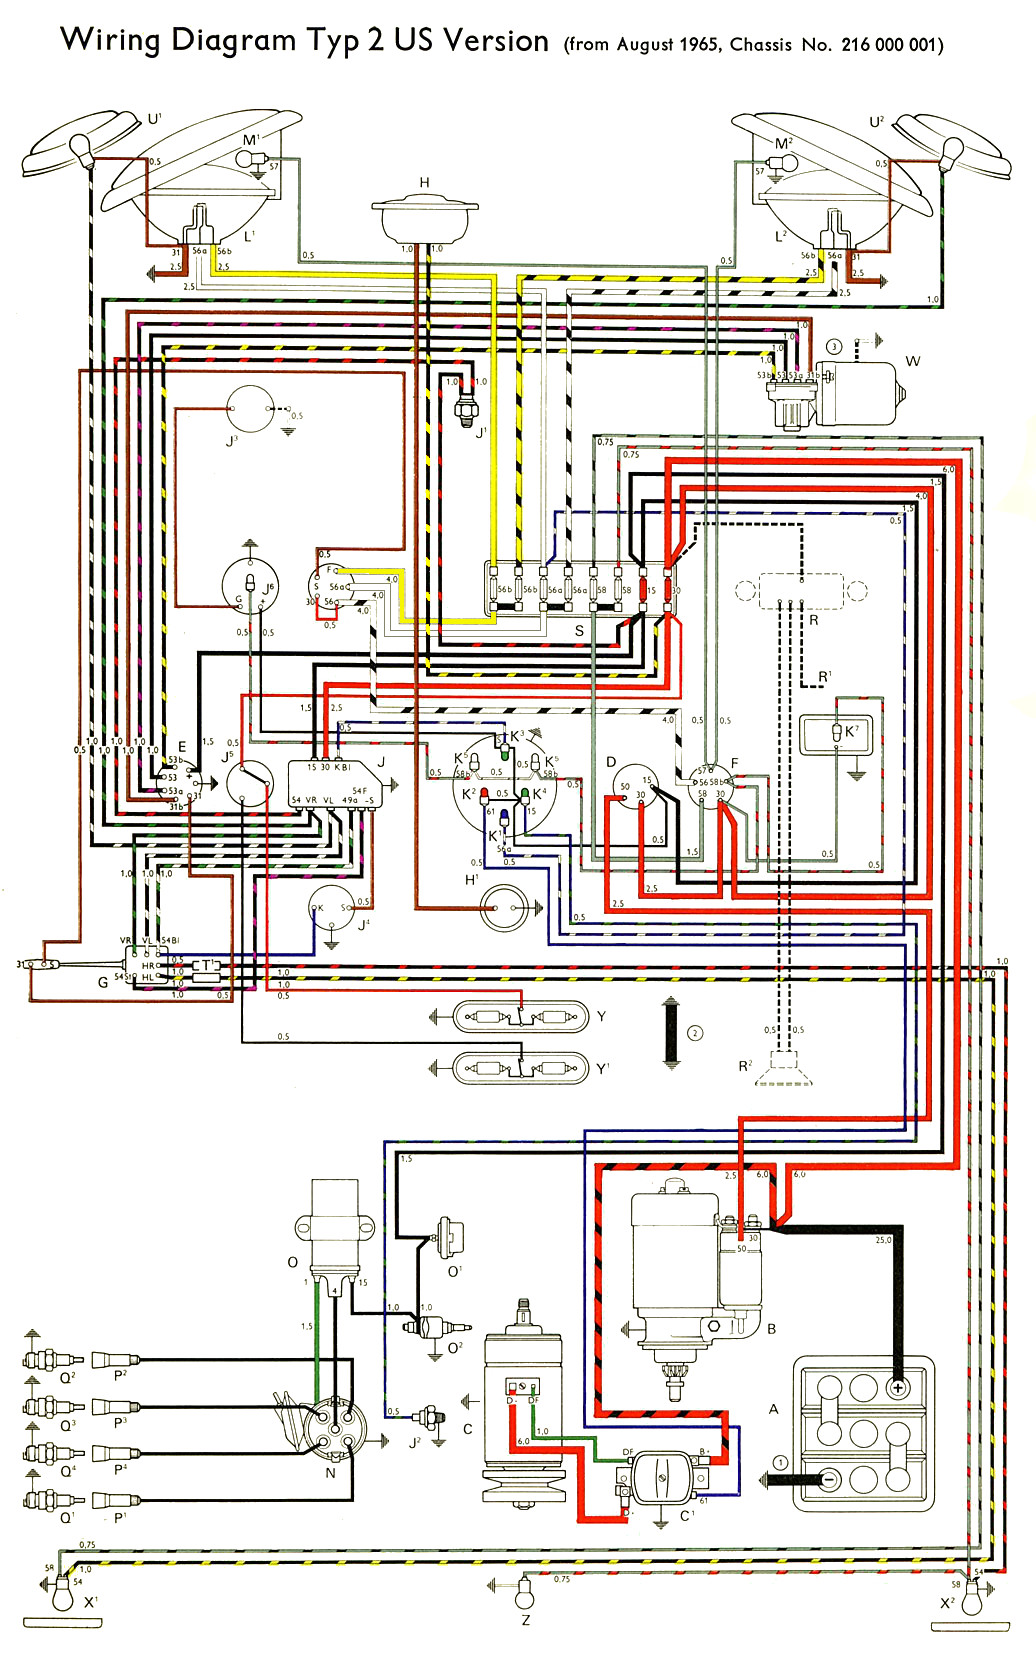 bus_66_USA code 3 mx7000 wiring diagram dolgular com  at edmiracle.co